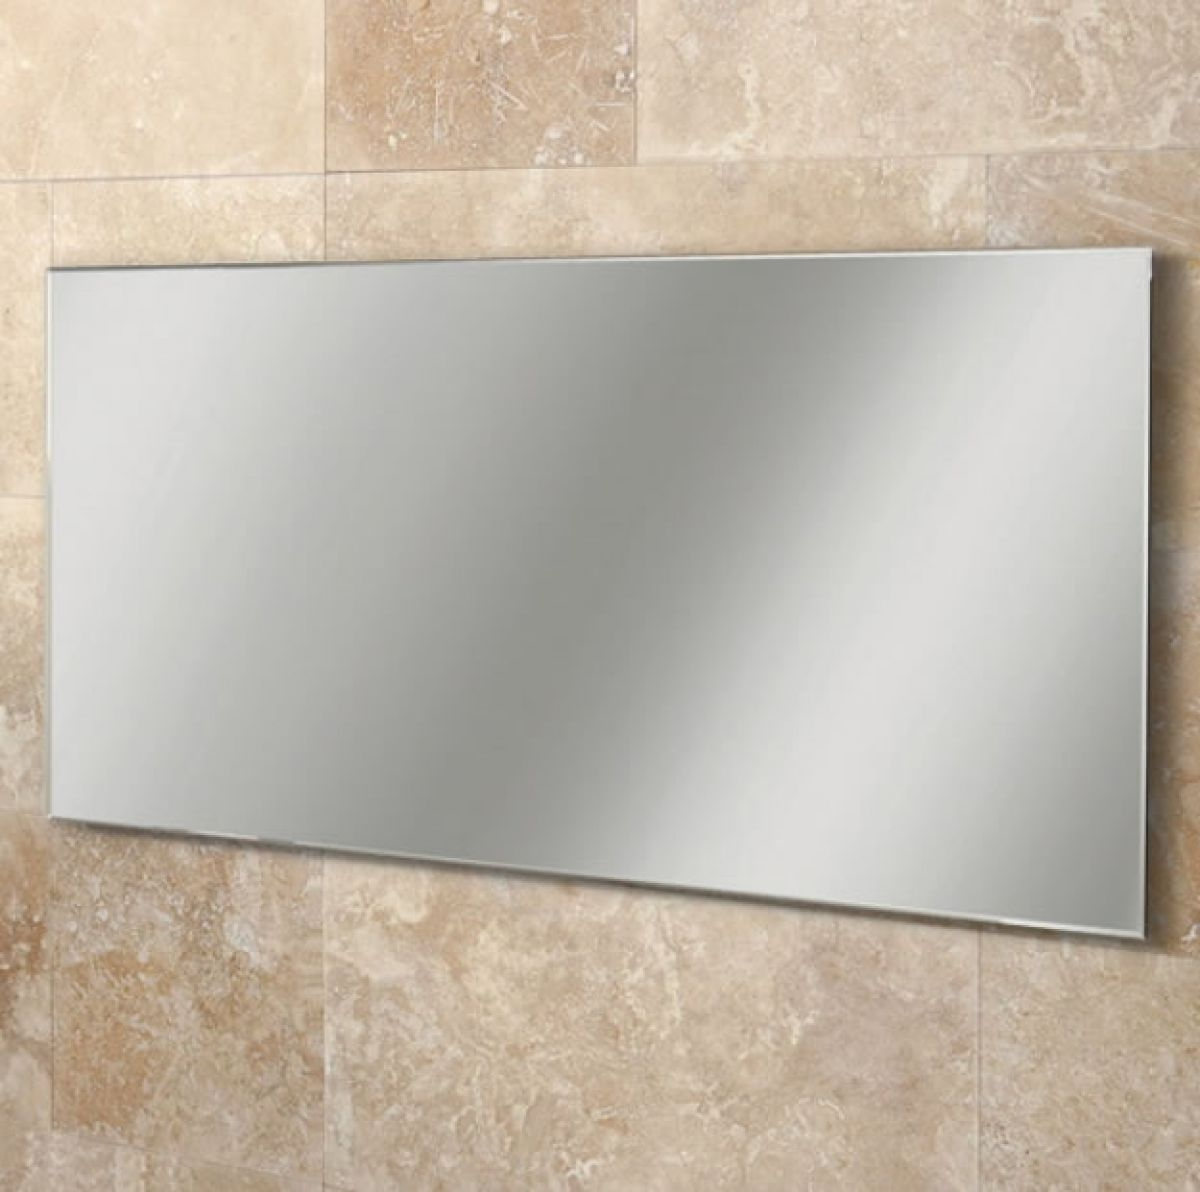 Large frameless mirrors for bathrooms home design for Large mirrors for bathroom walls